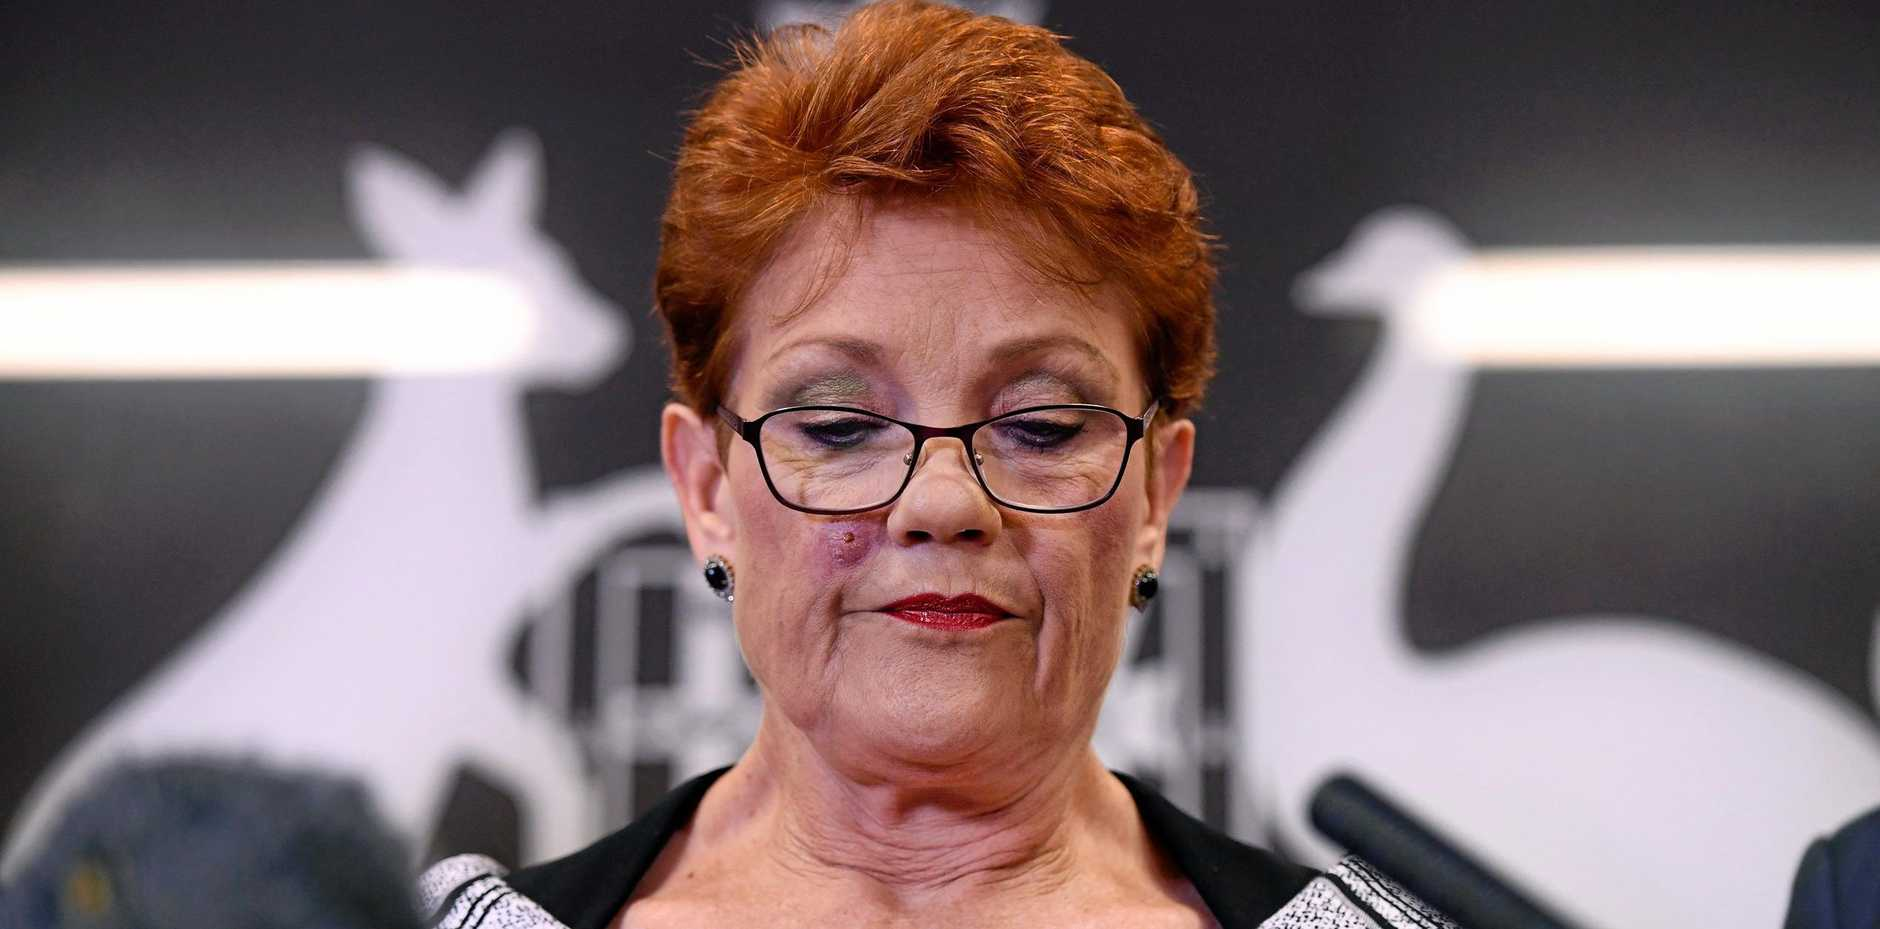 Queensland Senator and One Nation leader Pauline Hanson.